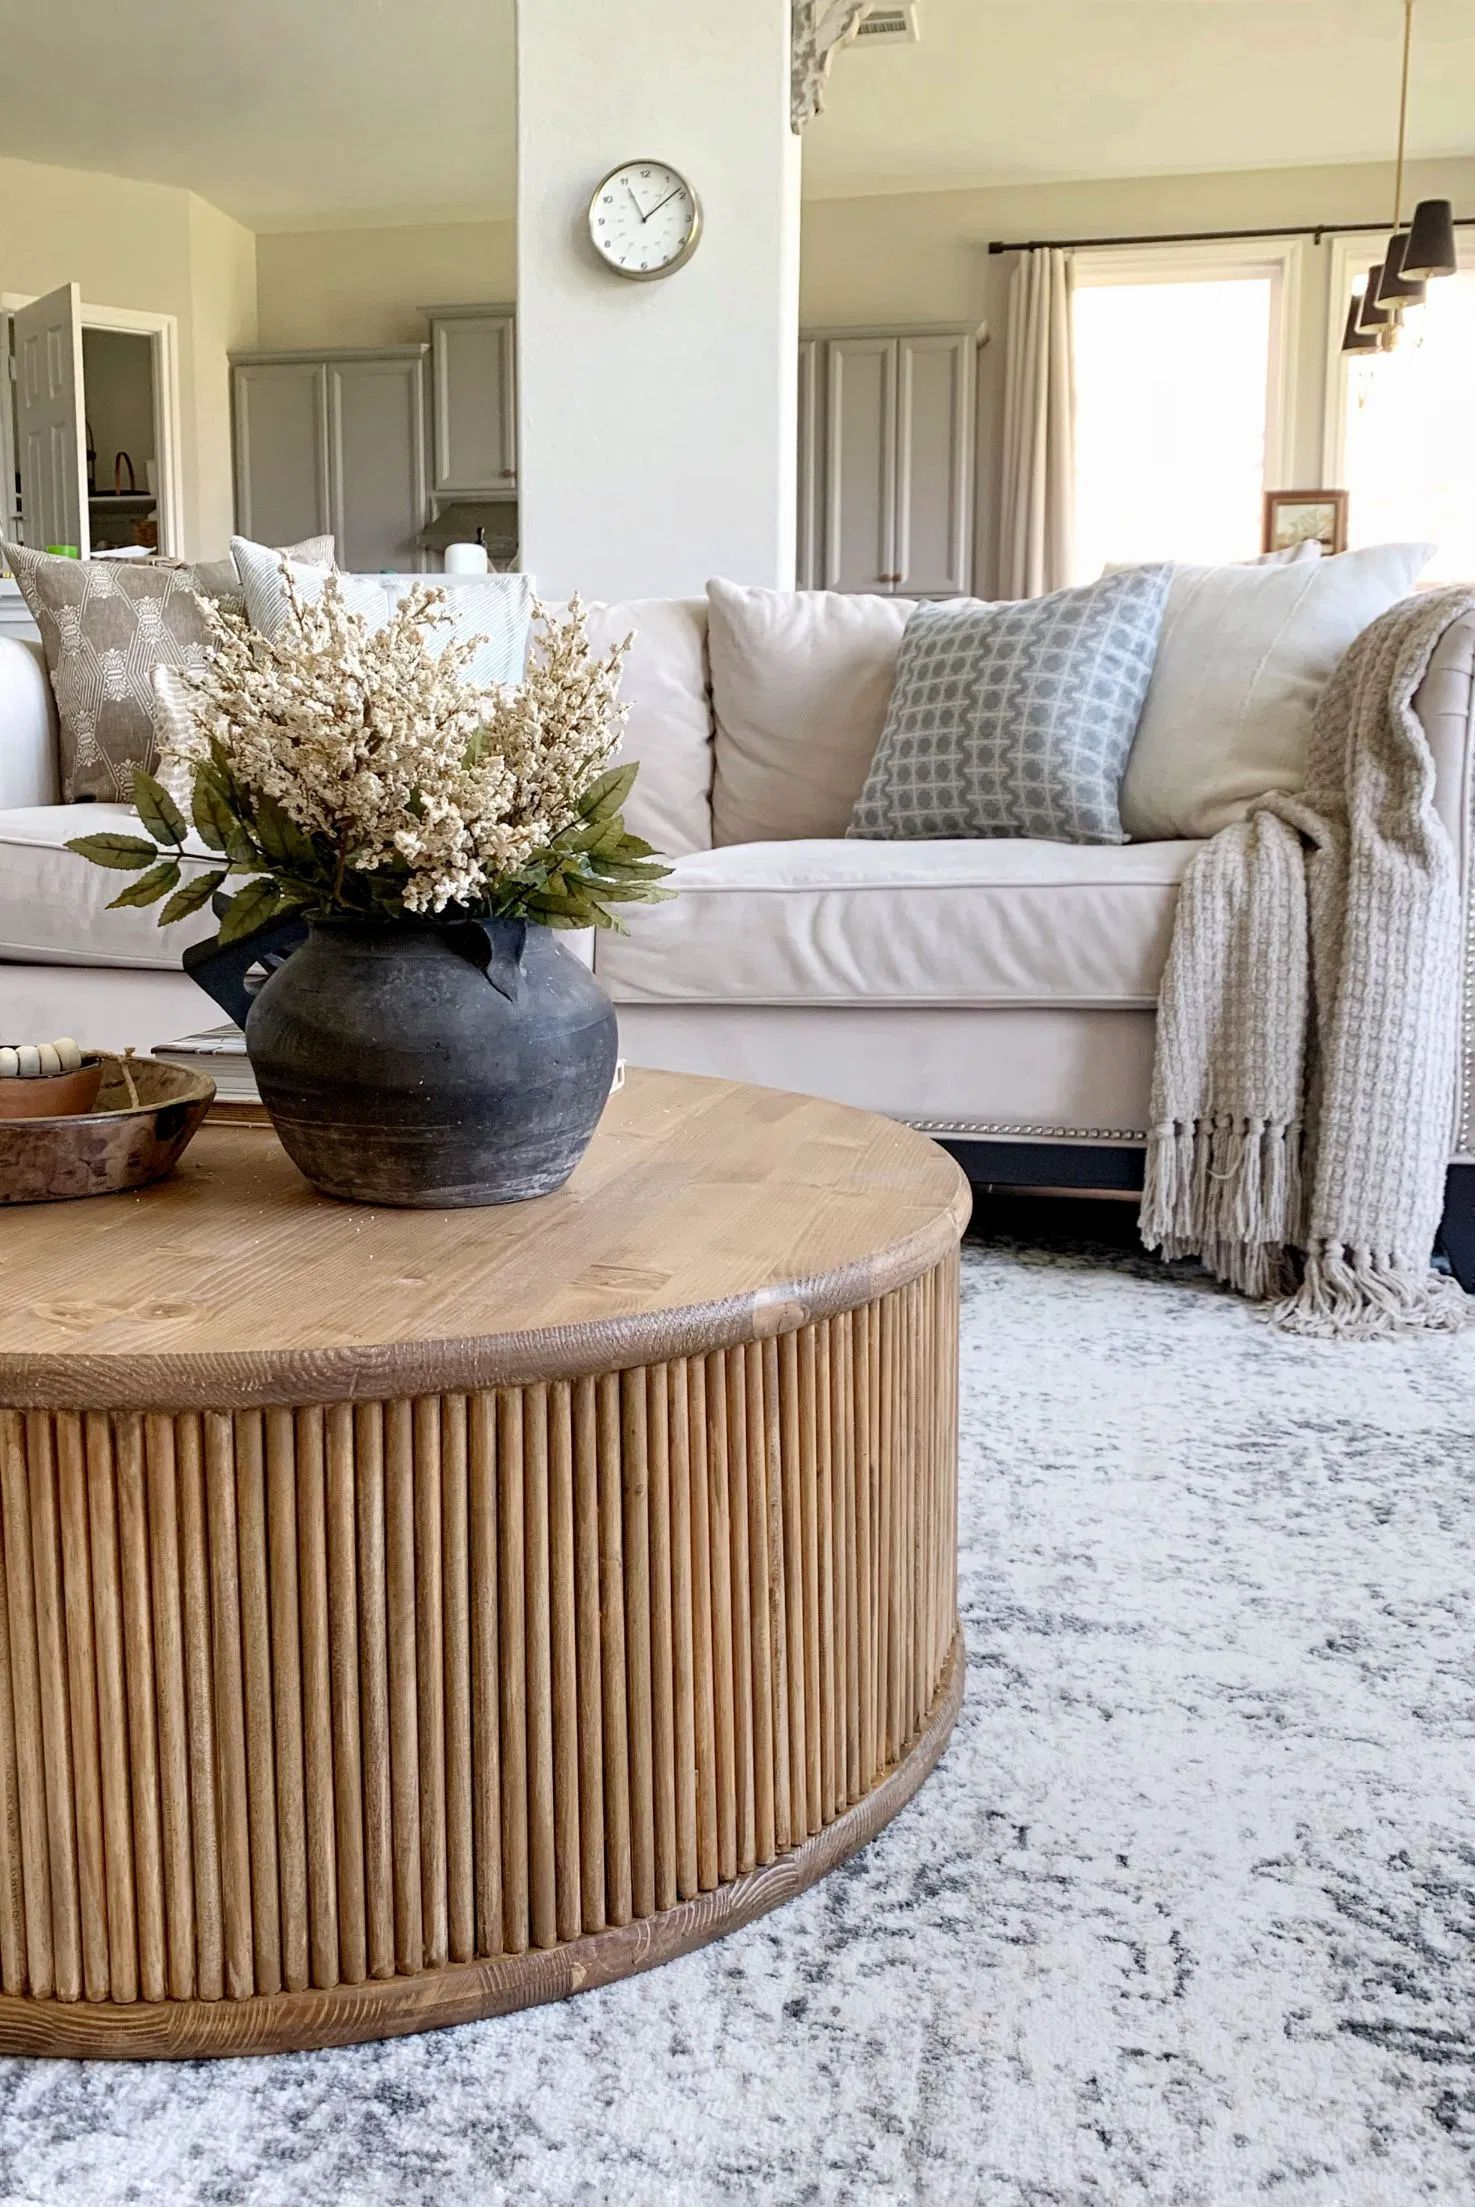 Diy Fluted Coffee Table Tutorial Round Coffee Table Diy Coffee Table Coffee Table Design [ 2207 x 1475 Pixel ]